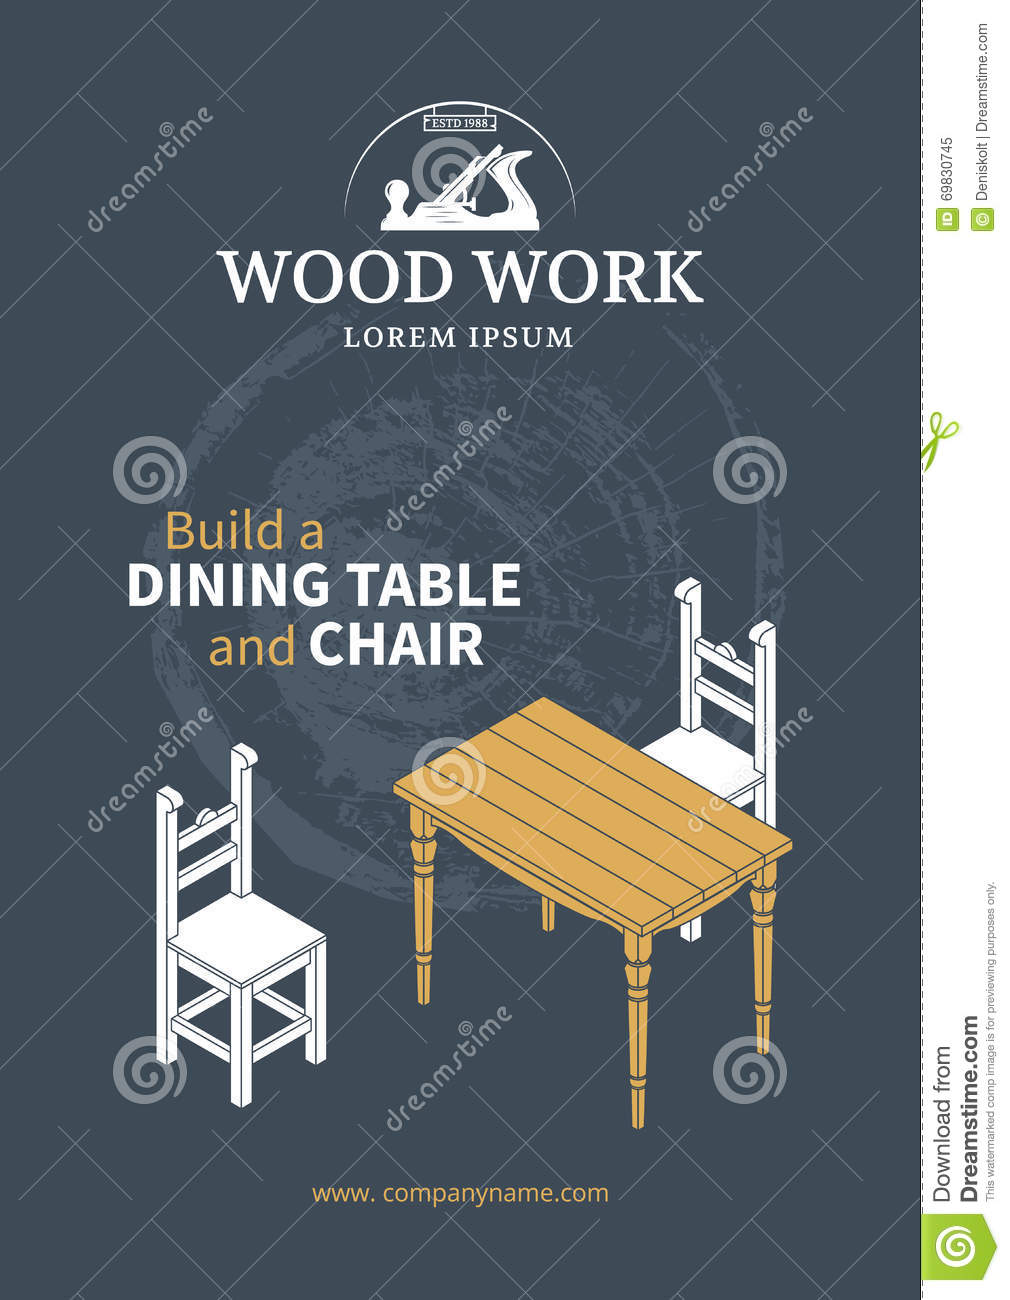 Furniture Wood Poster Stock Vector - Image: 69830745